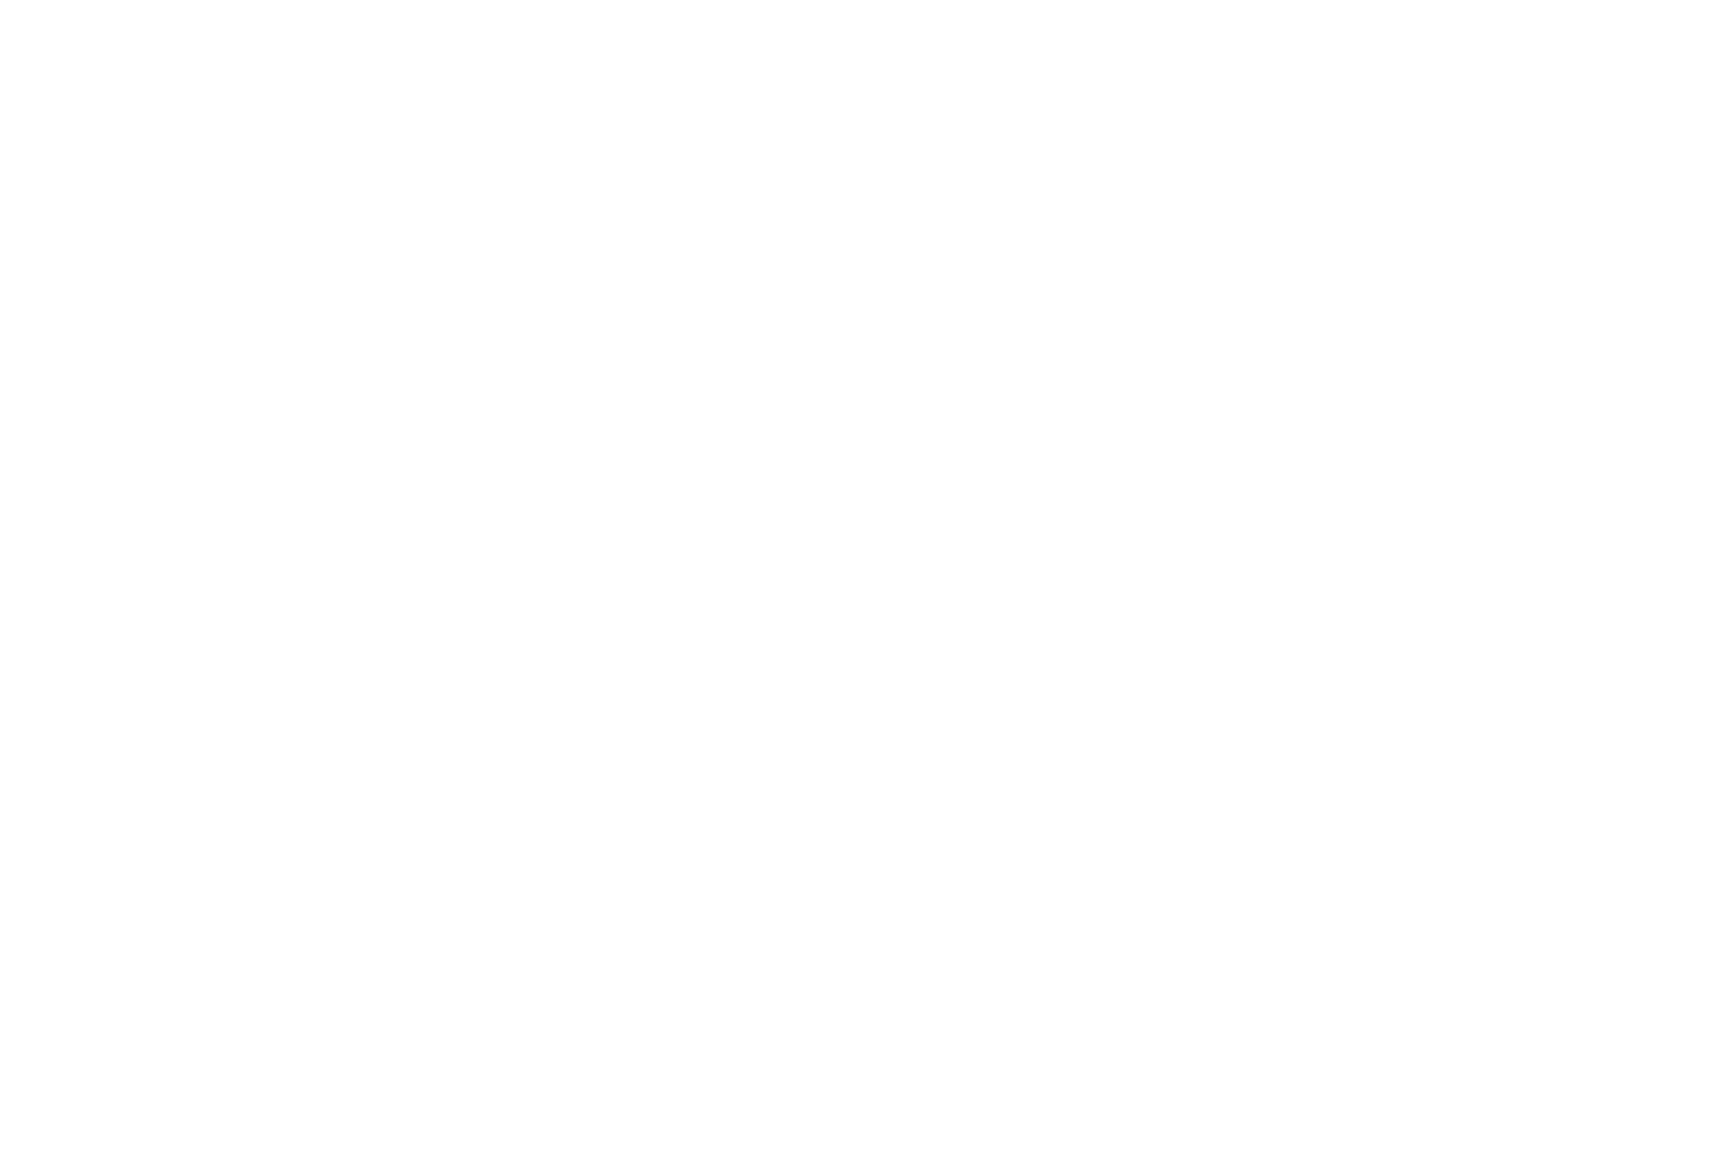 OFFICIAL SELECTION - SoCal Independent Film Festival